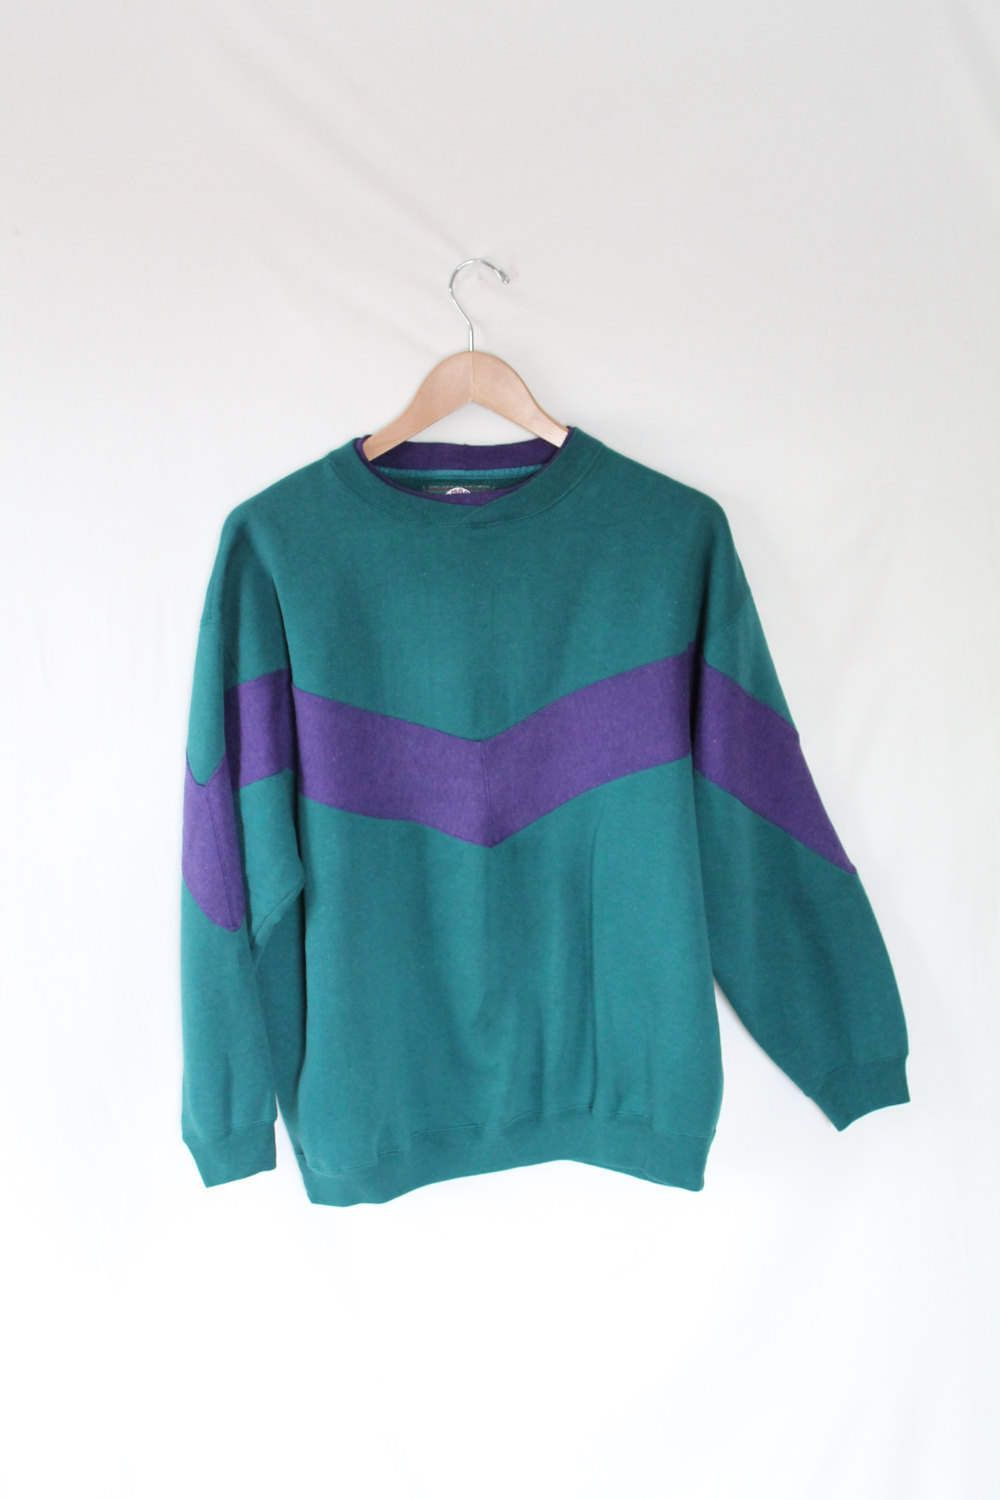 46c40b11d 90s TIMBERLAND Long Sleeve Polo Sweatshirt // Turquoise Purple Geometric  Retro Color Block // Soft Grunge Mac Demarco Freaks and Geeks by  VegaGenesisVintage ...